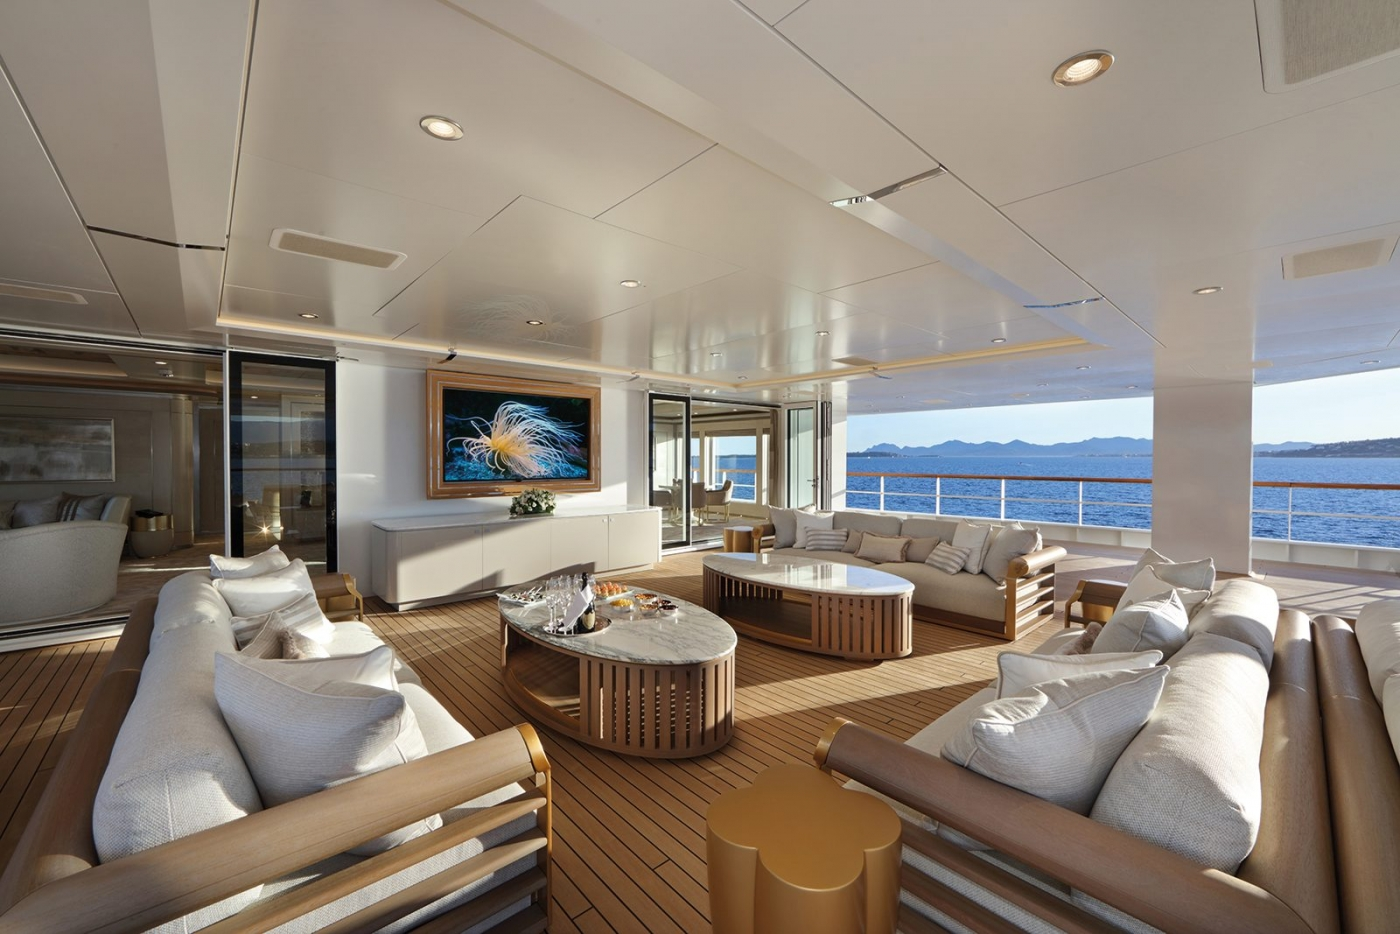 yacht interiors Top 5 Luxury Yacht Interiors by H2 Yacht Design U164A7855 web 1600x1067 1400x934